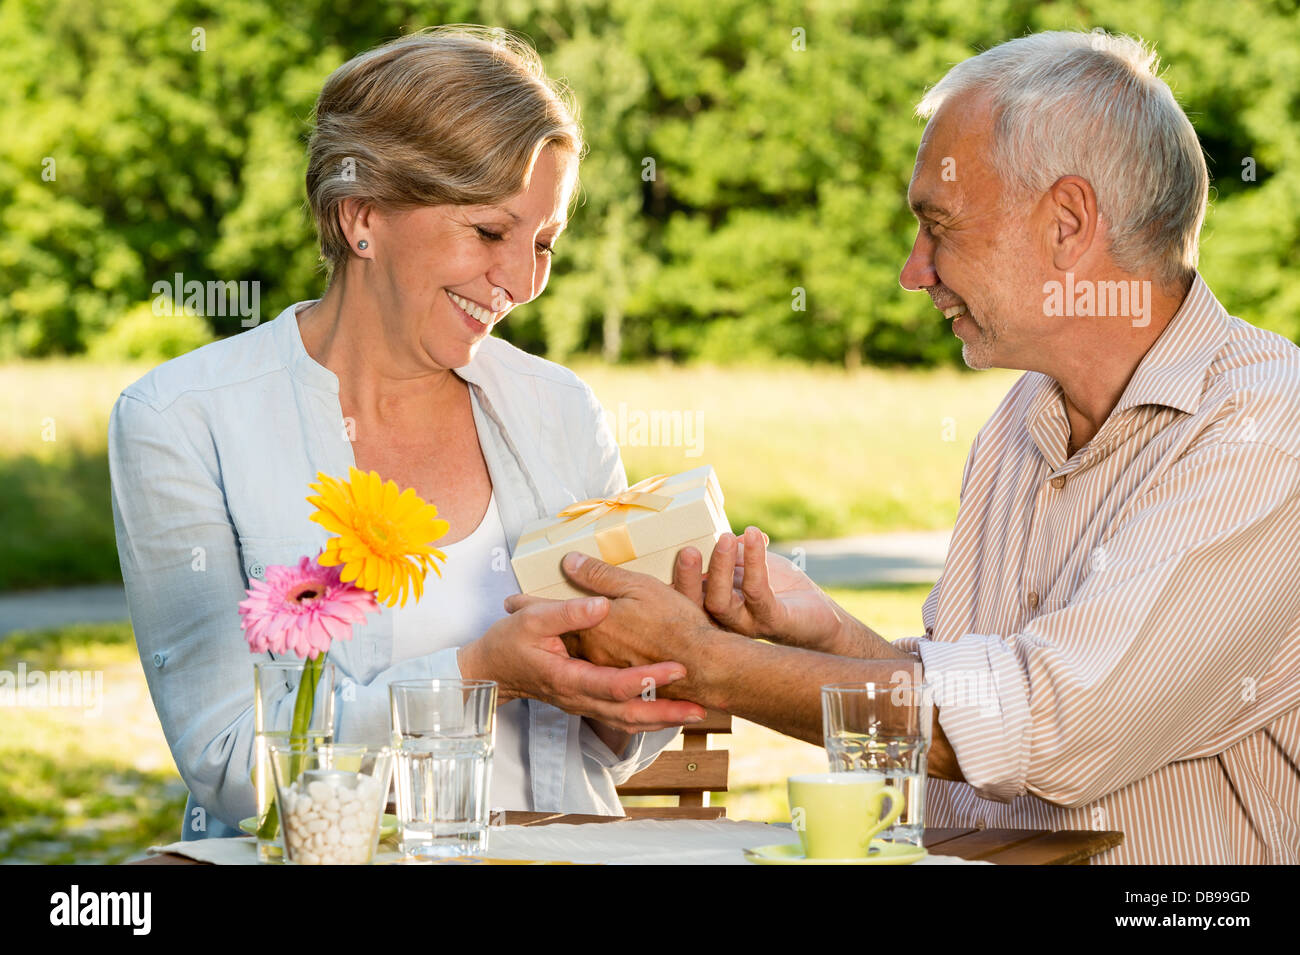 Retired Caucasian couple smiling and holding gift outdoors - Stock Image